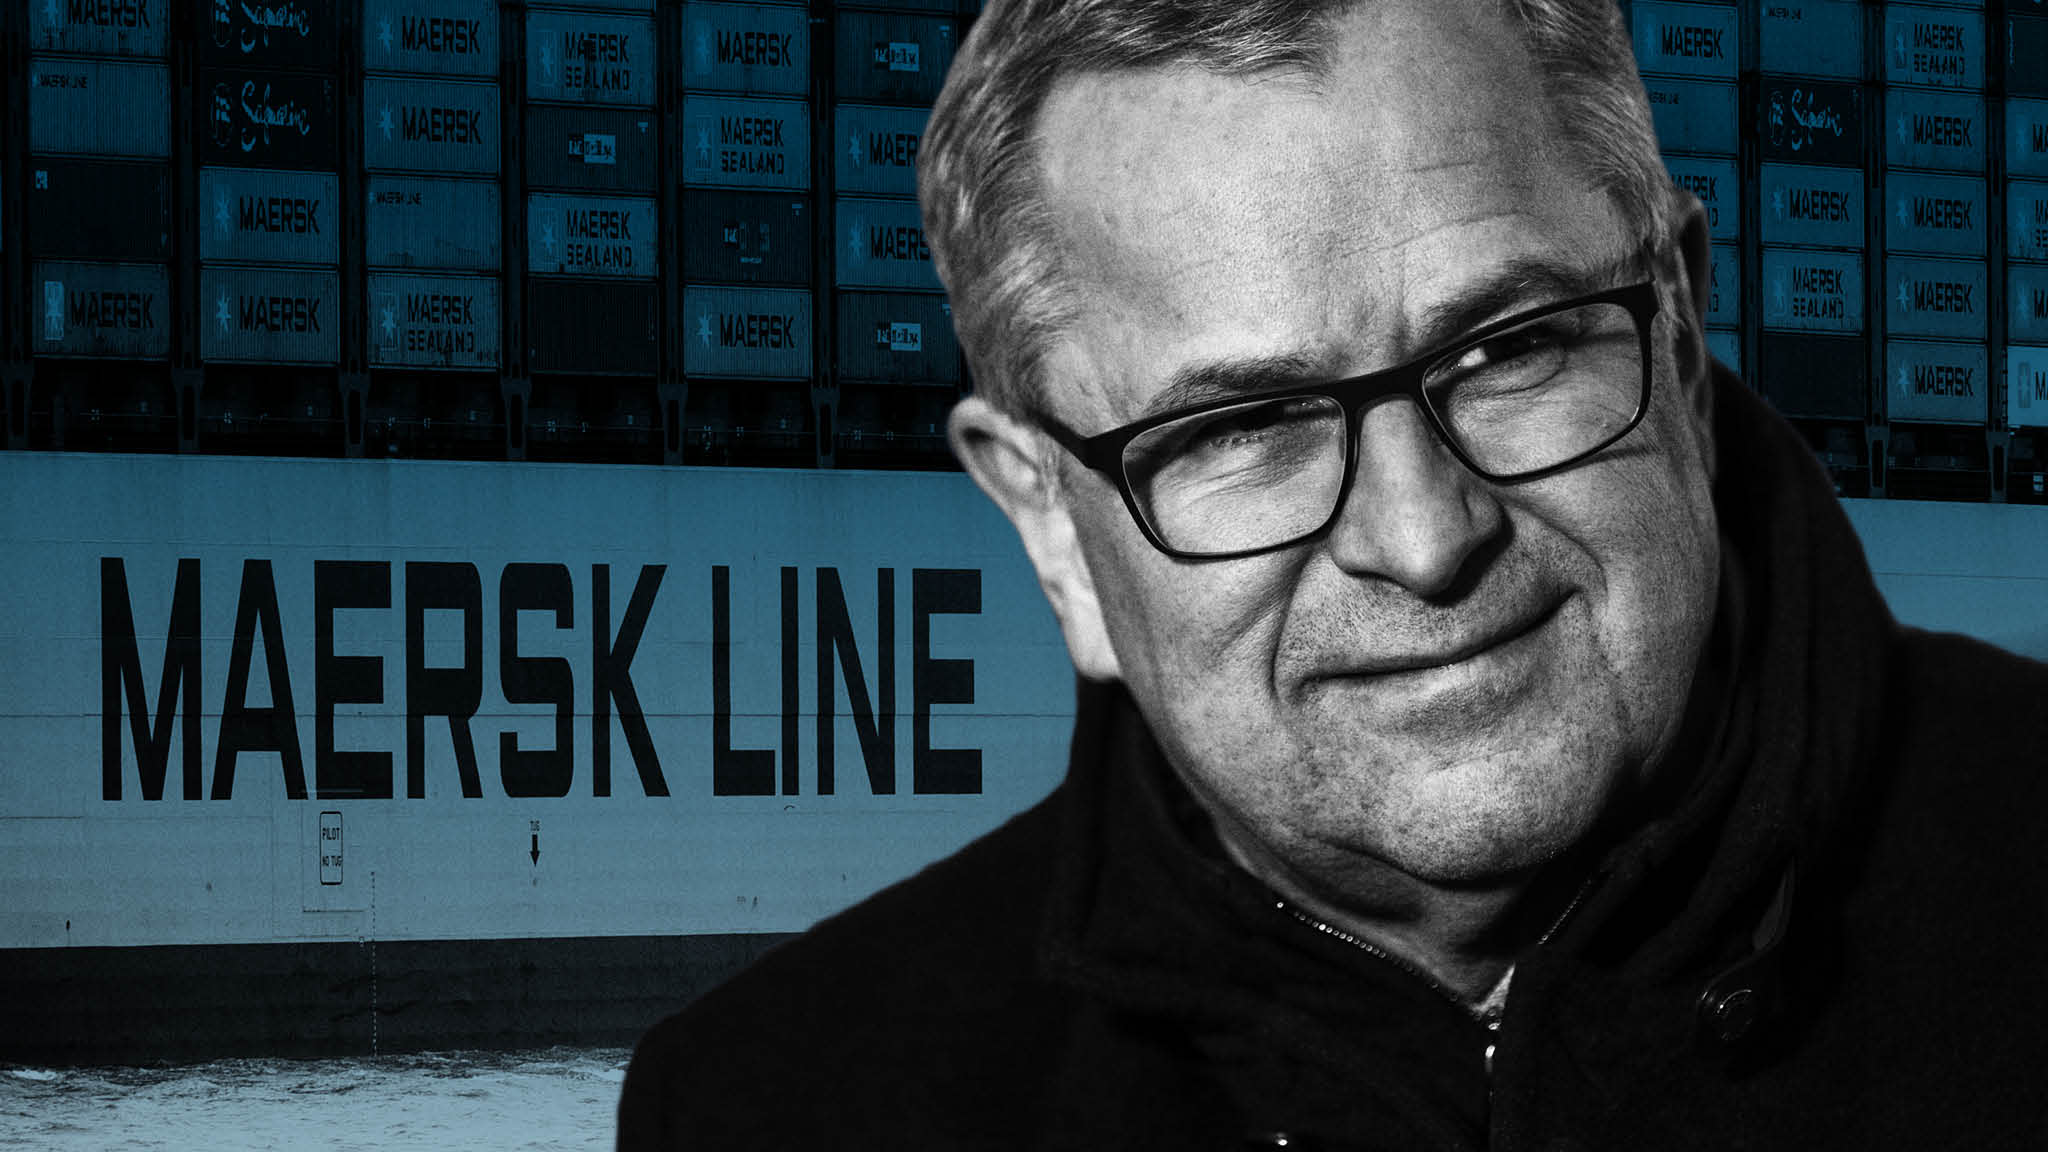 Shipping giant Maersk steams ahead with break-up plans | Financial Times